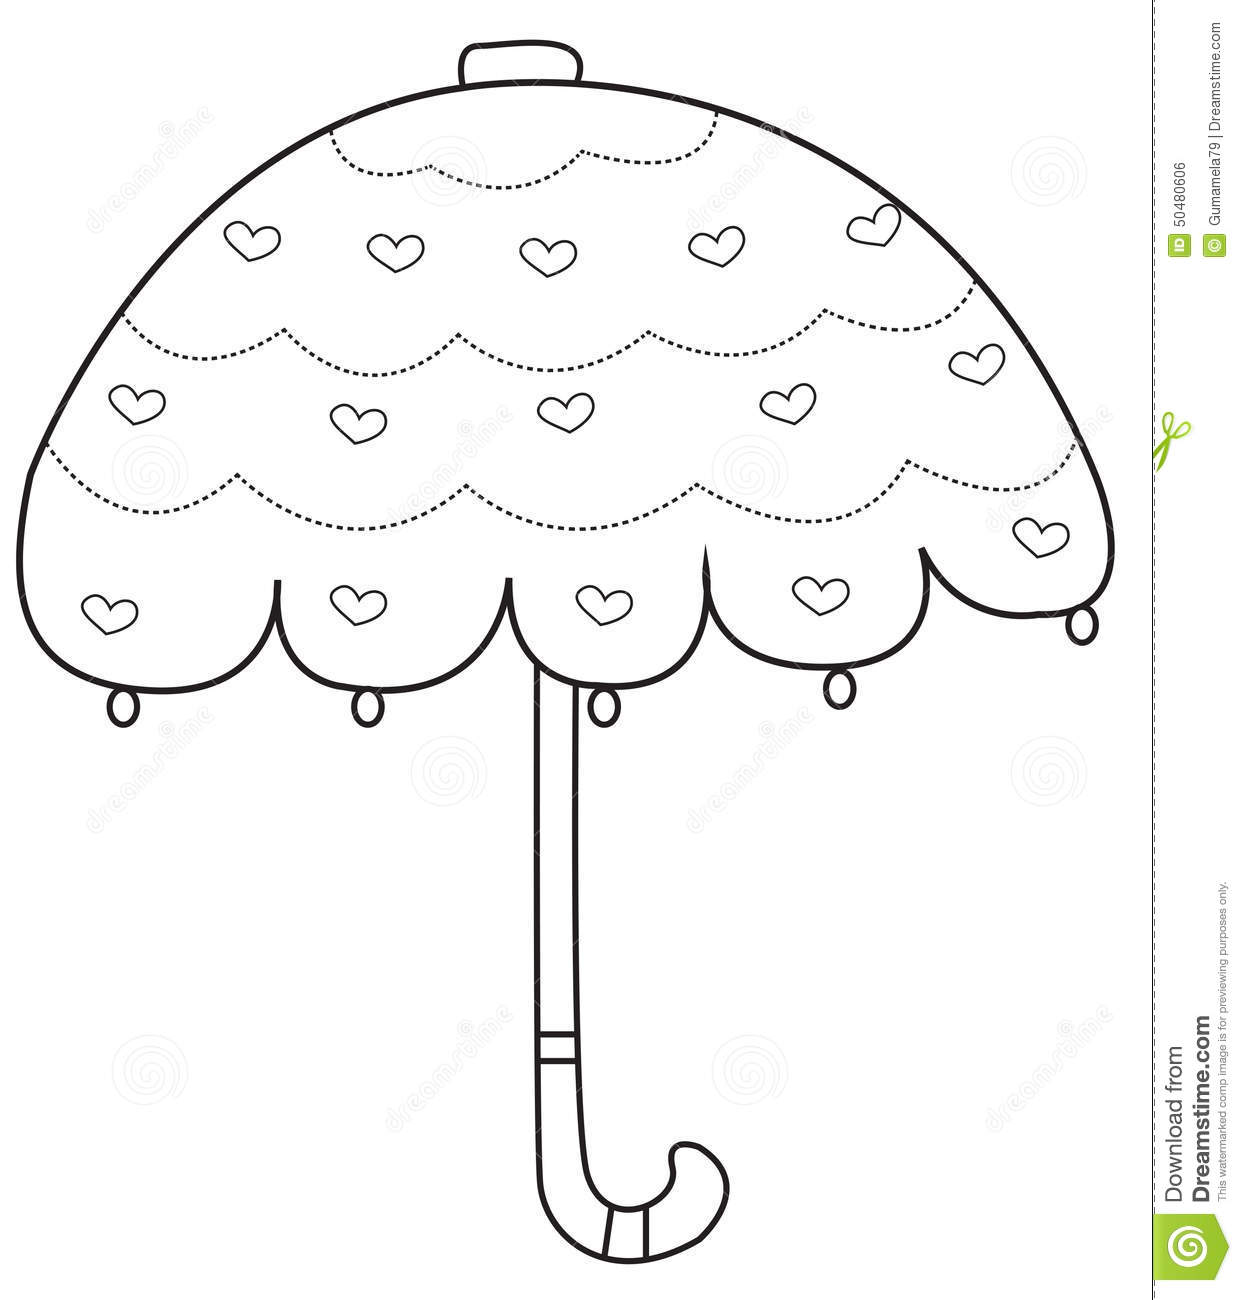 duck with umbrella coloring page - umbrella coloring download umbrella coloring